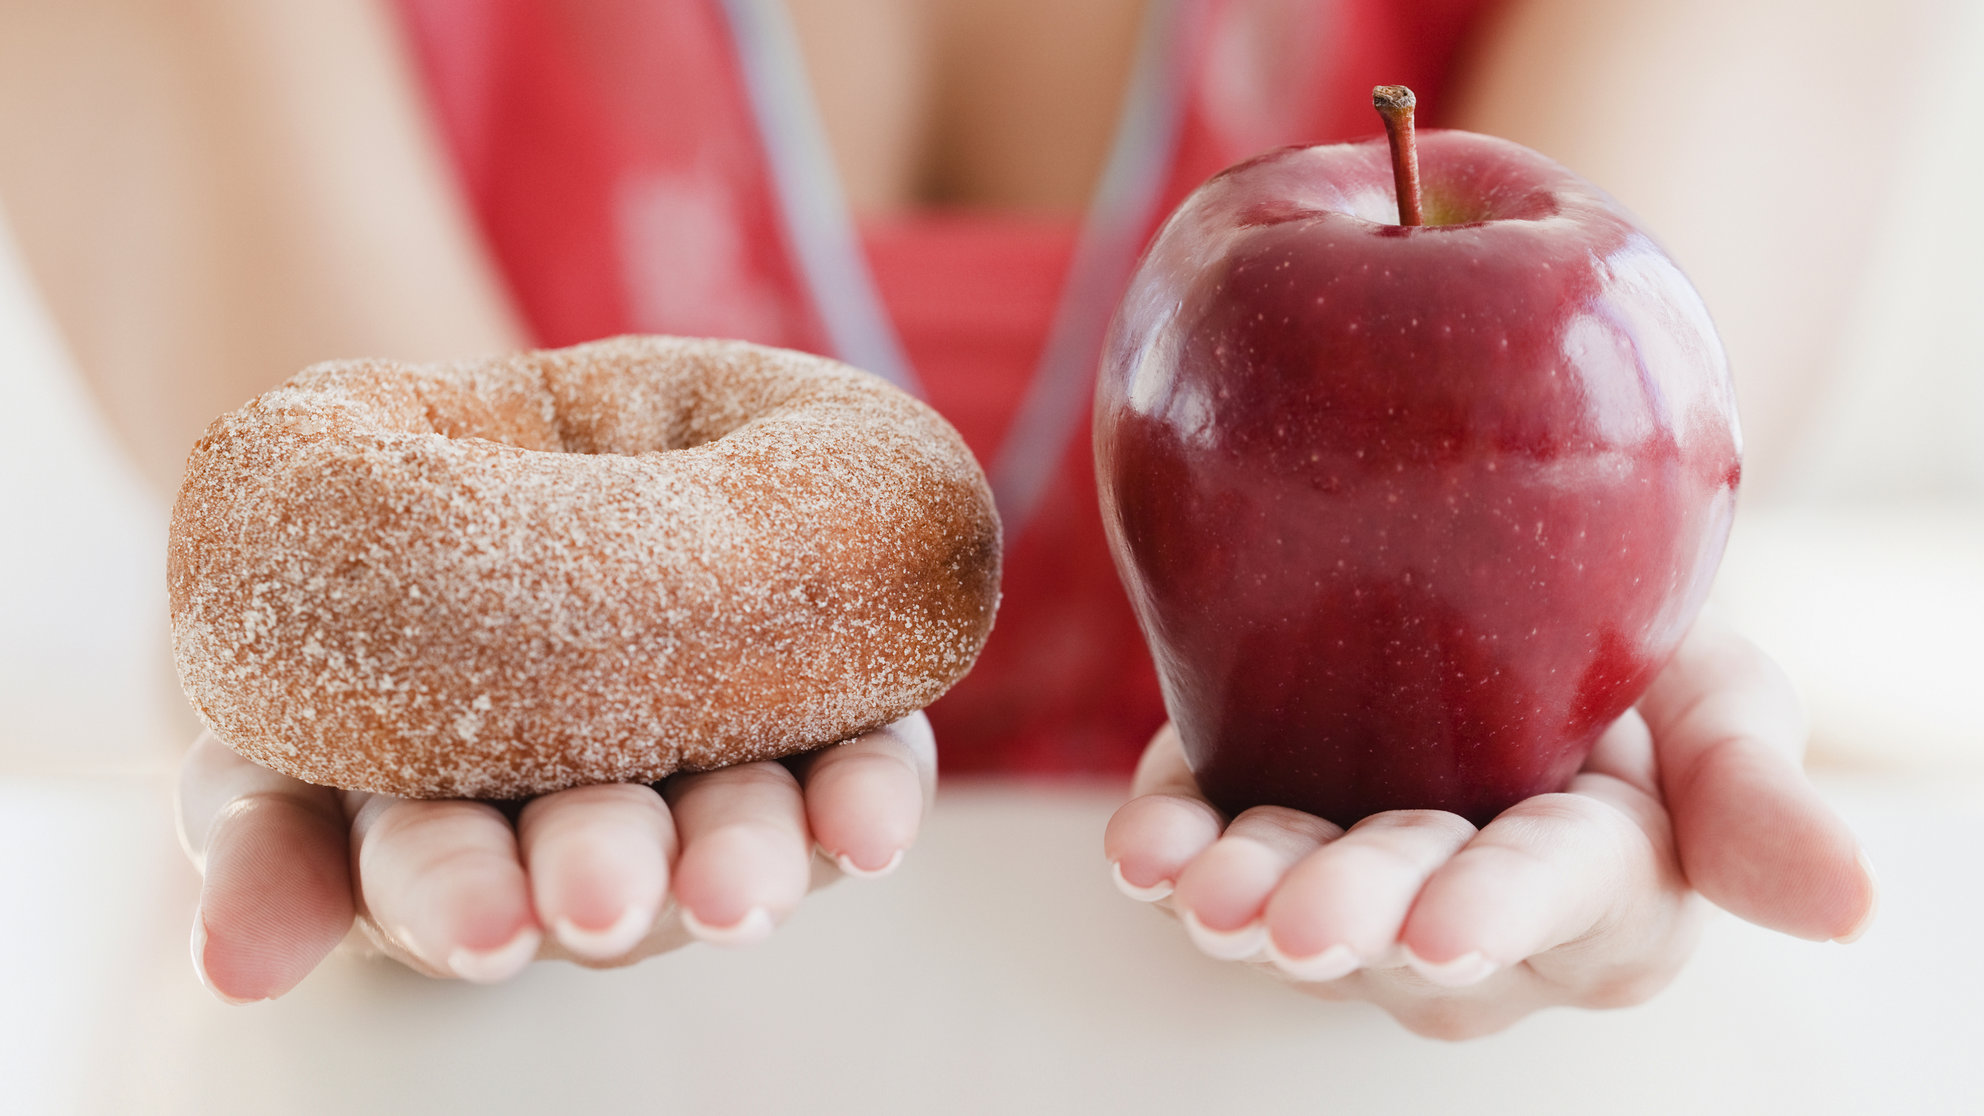 USA, New Jersey, Jersey City, Close up of woman's hands holding donut and apple